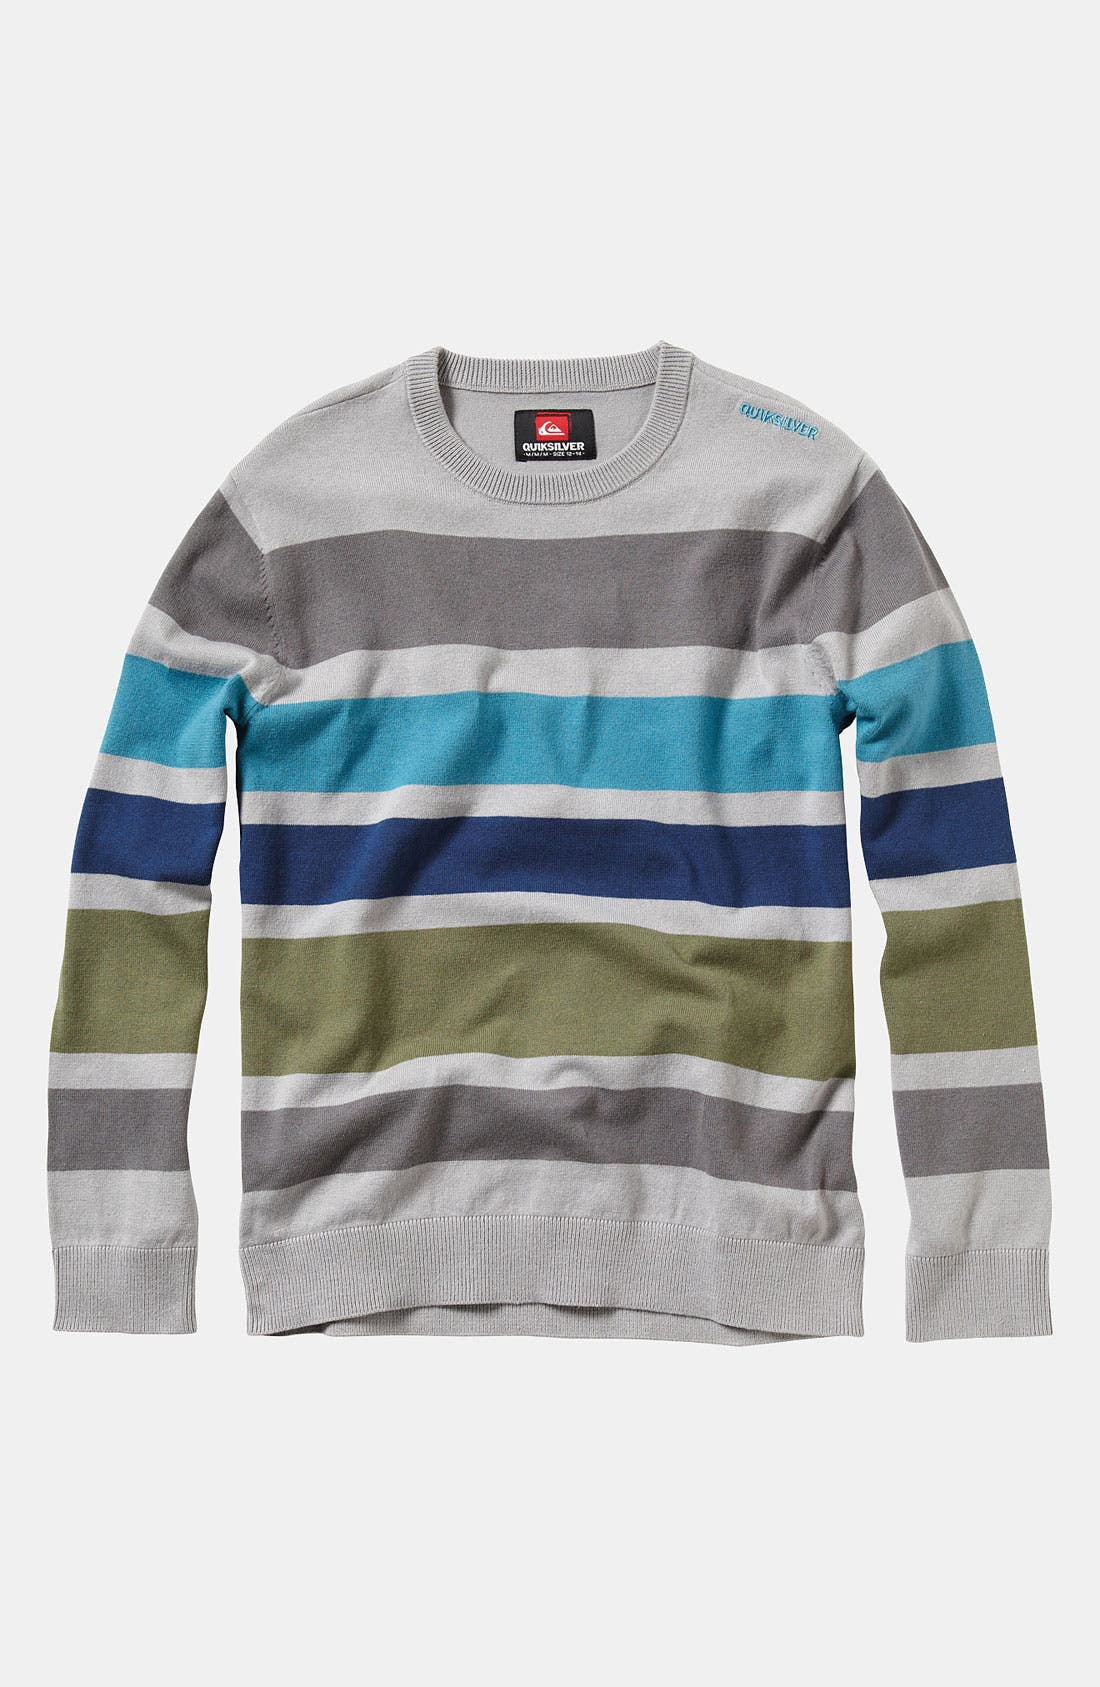 Main Image - Quiksilver 'Casting' Sweater (Little Boys)